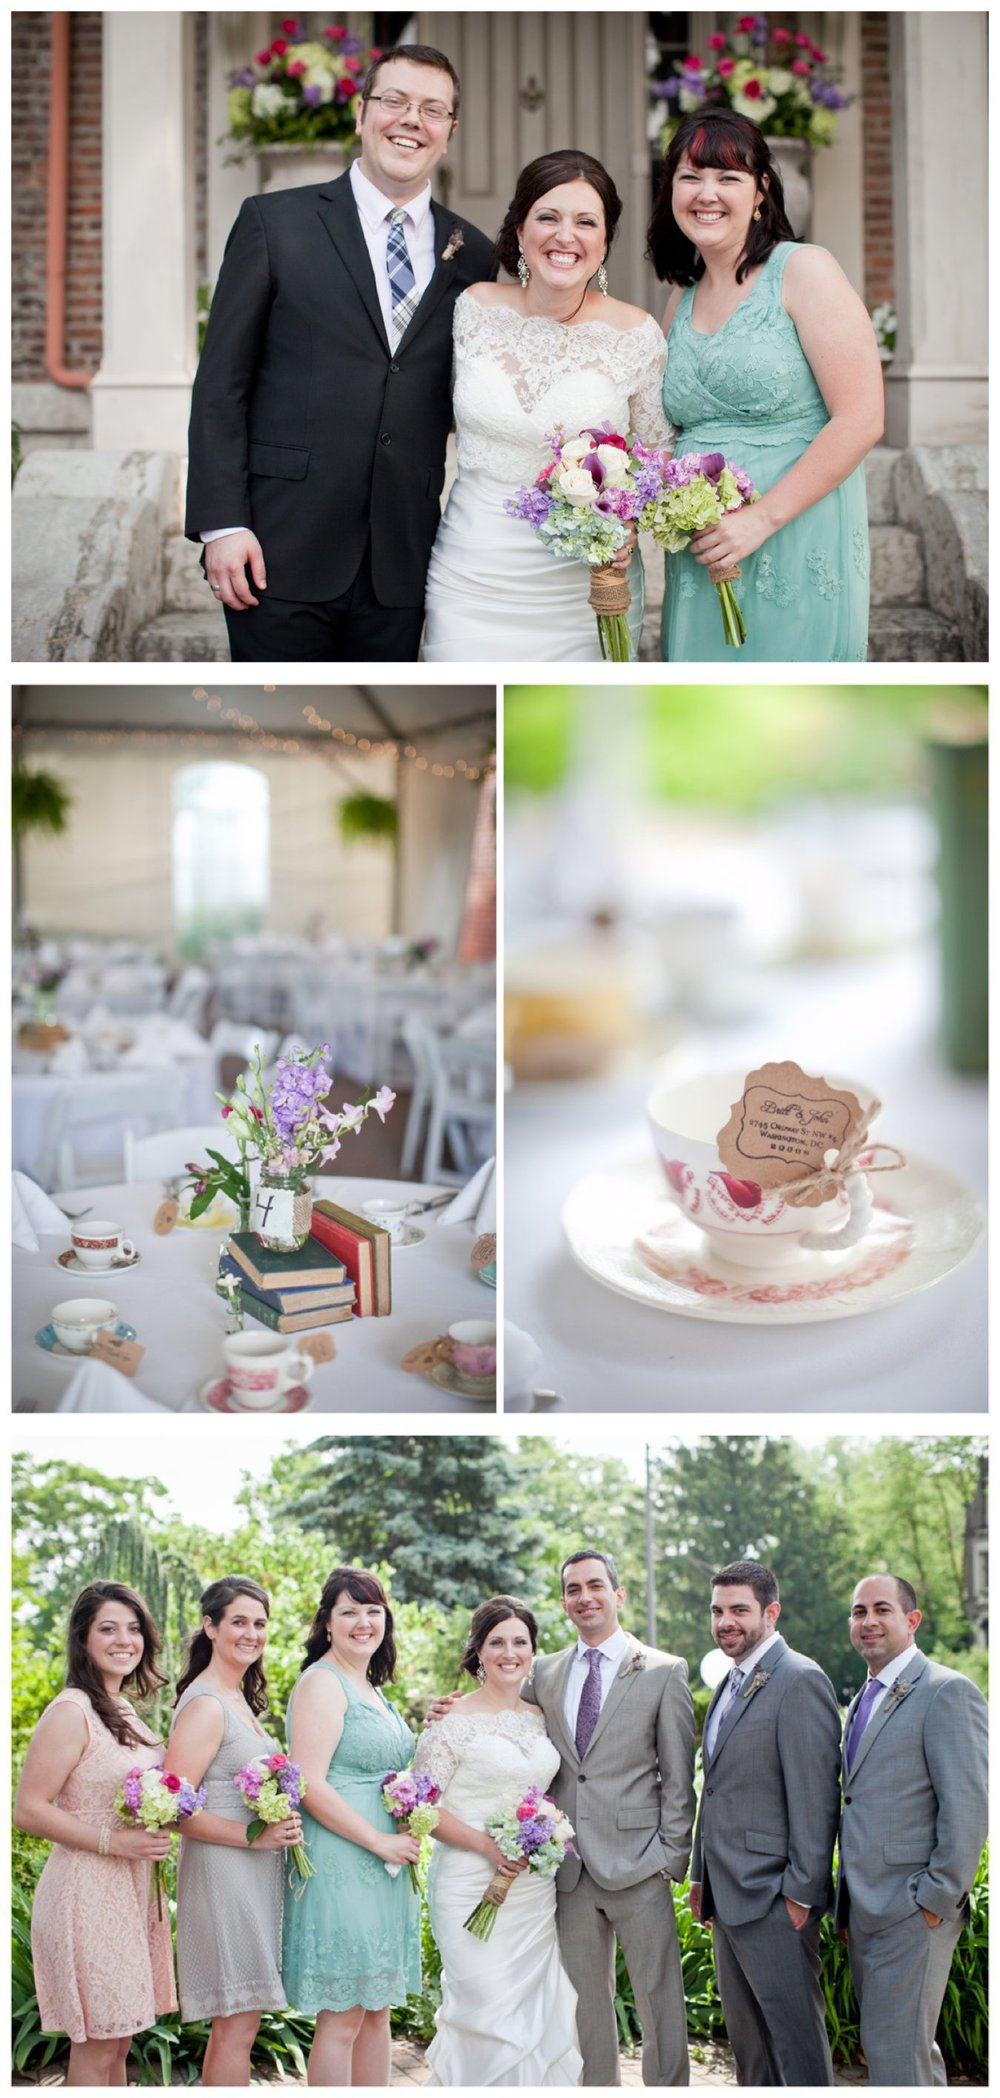 Brunch wedding at the taylor mansion